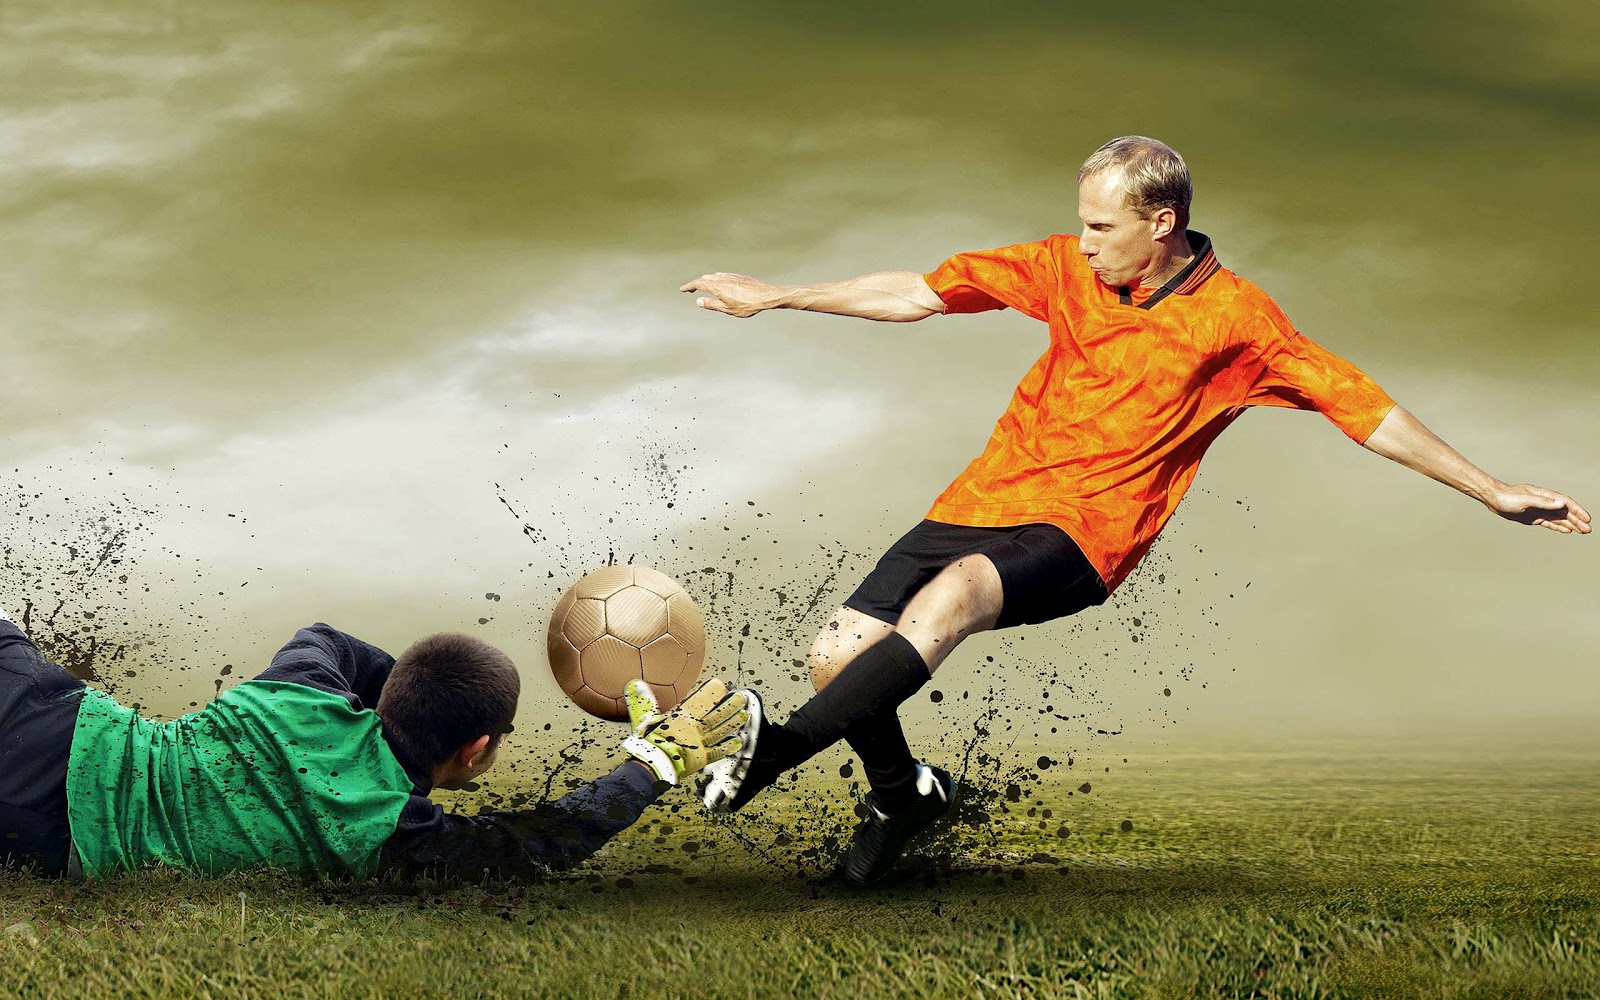 desktop wallpapers sports soccer backgrounds games15jpg 1600x1000